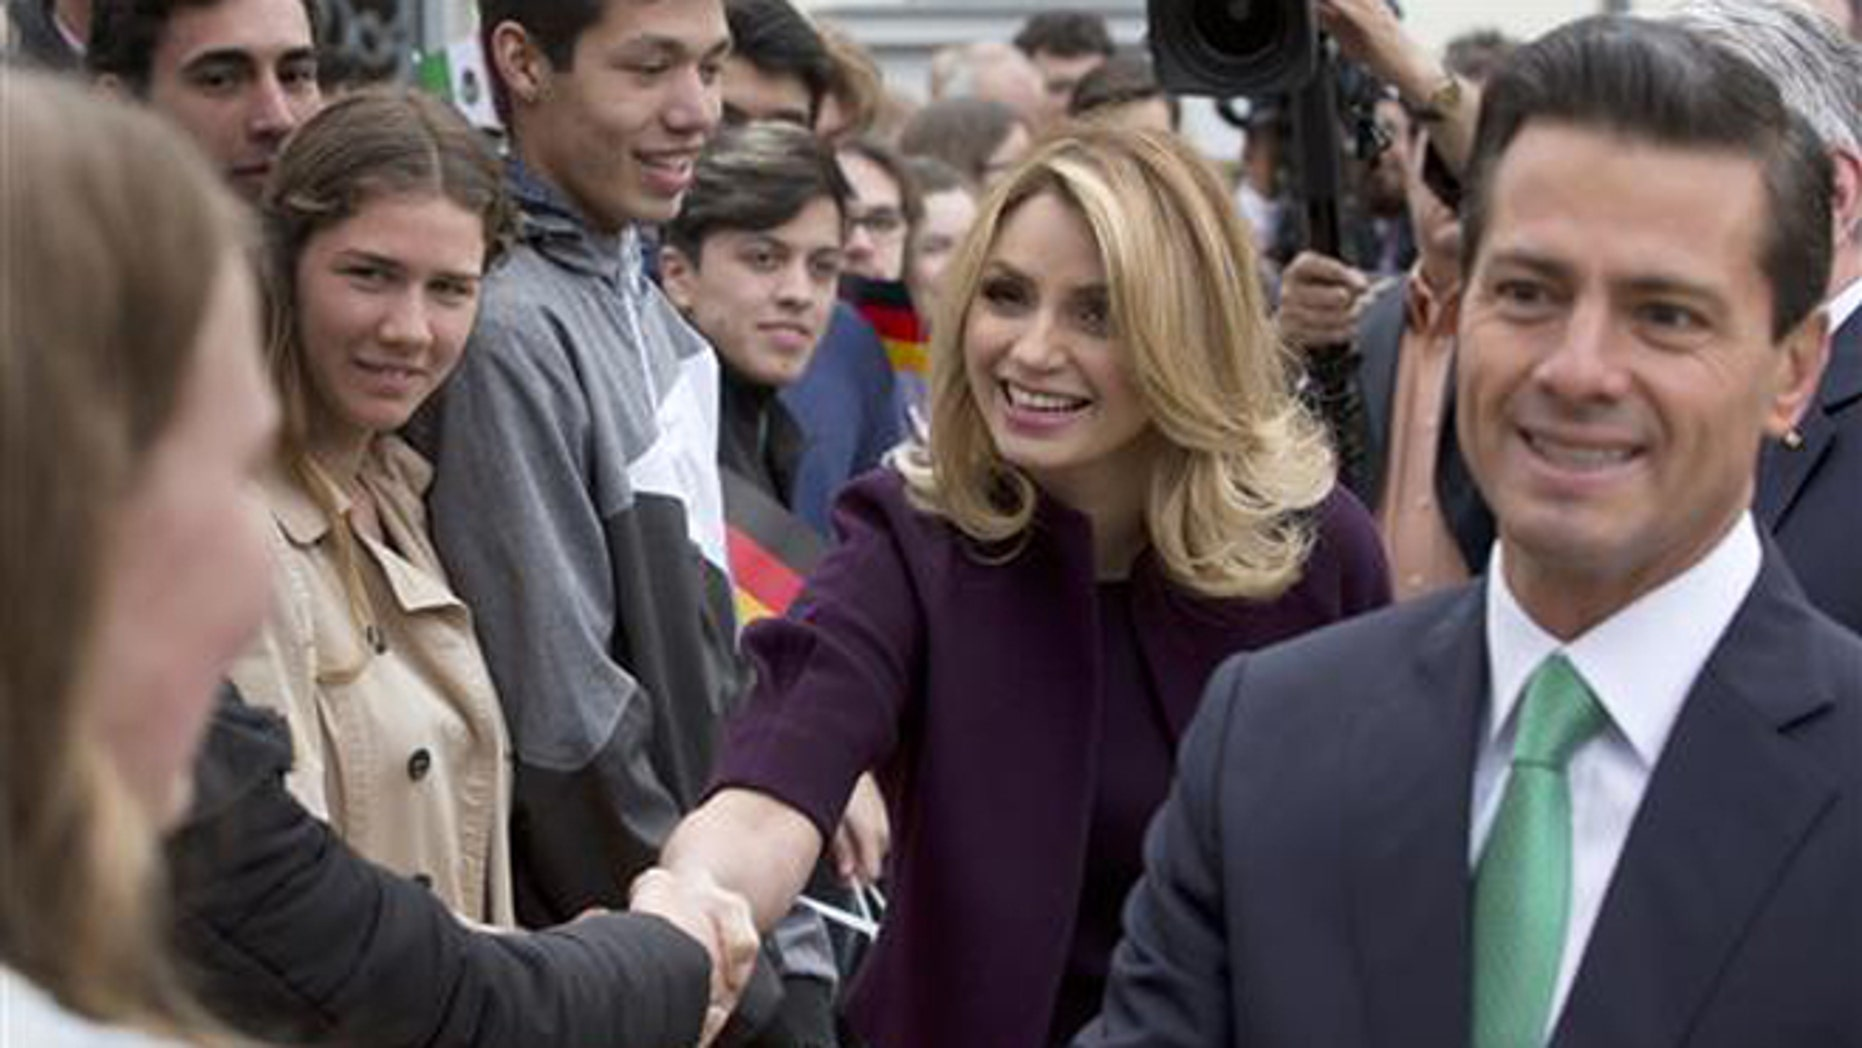 In this April 11, 2016 file photo, Mexico's President Enrique Pena Nieto, right, and his wife Angelica Rivera de Pena greet students as they arrive to meet with Germany's President Joachim Gauck at Bellevue Palace in Berlin, Germany. Pena Nieto apologized on Monday, July 18, 2016 for a 2014 scandal involving a mansion his wife bought from a firm that won lucrative contracts with his administration. (AP Photo/Michael Sohn, File)